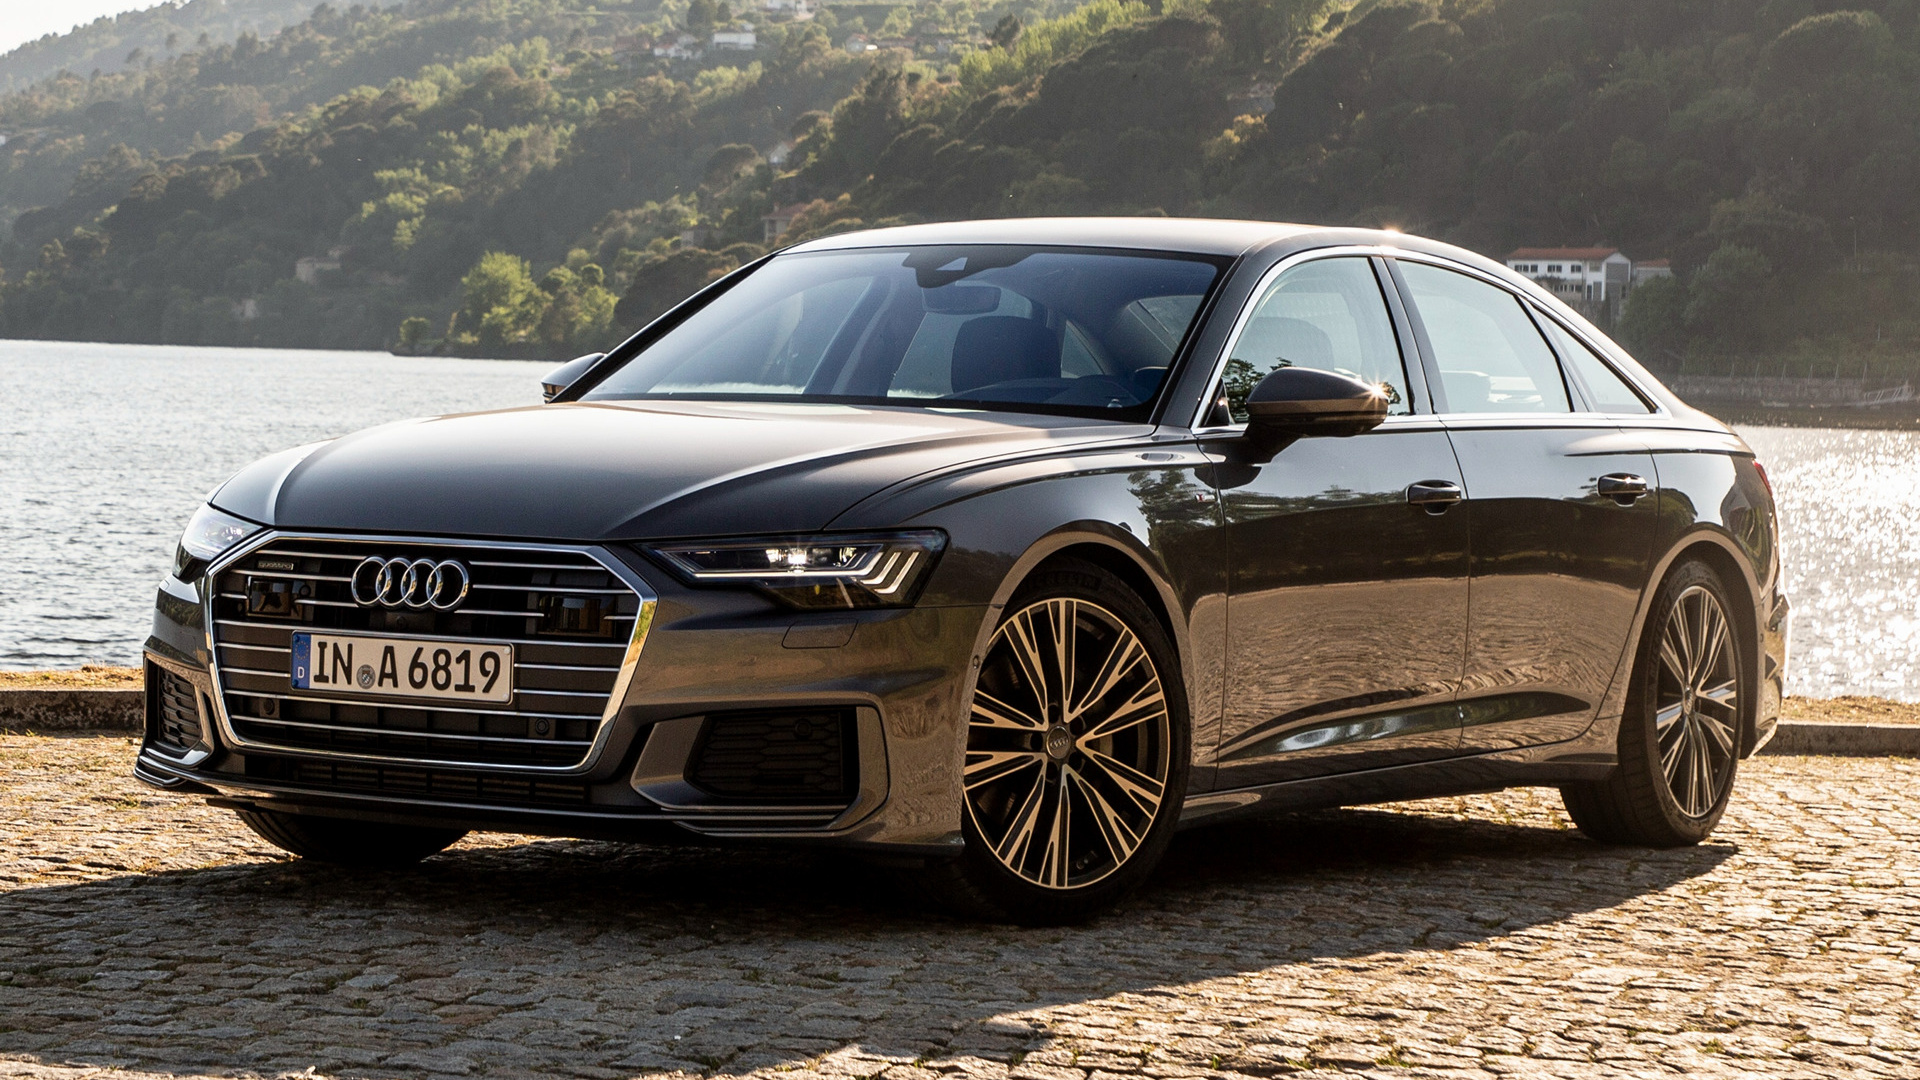 Free Download 2018 Audi A6 Sedan S Line Wallpapers And Hd Images Car Pixel 1920x1080 For Your Desktop Mobile Tablet Explore 28 Audi A6 2018 Wallpapers Audi A6 2018